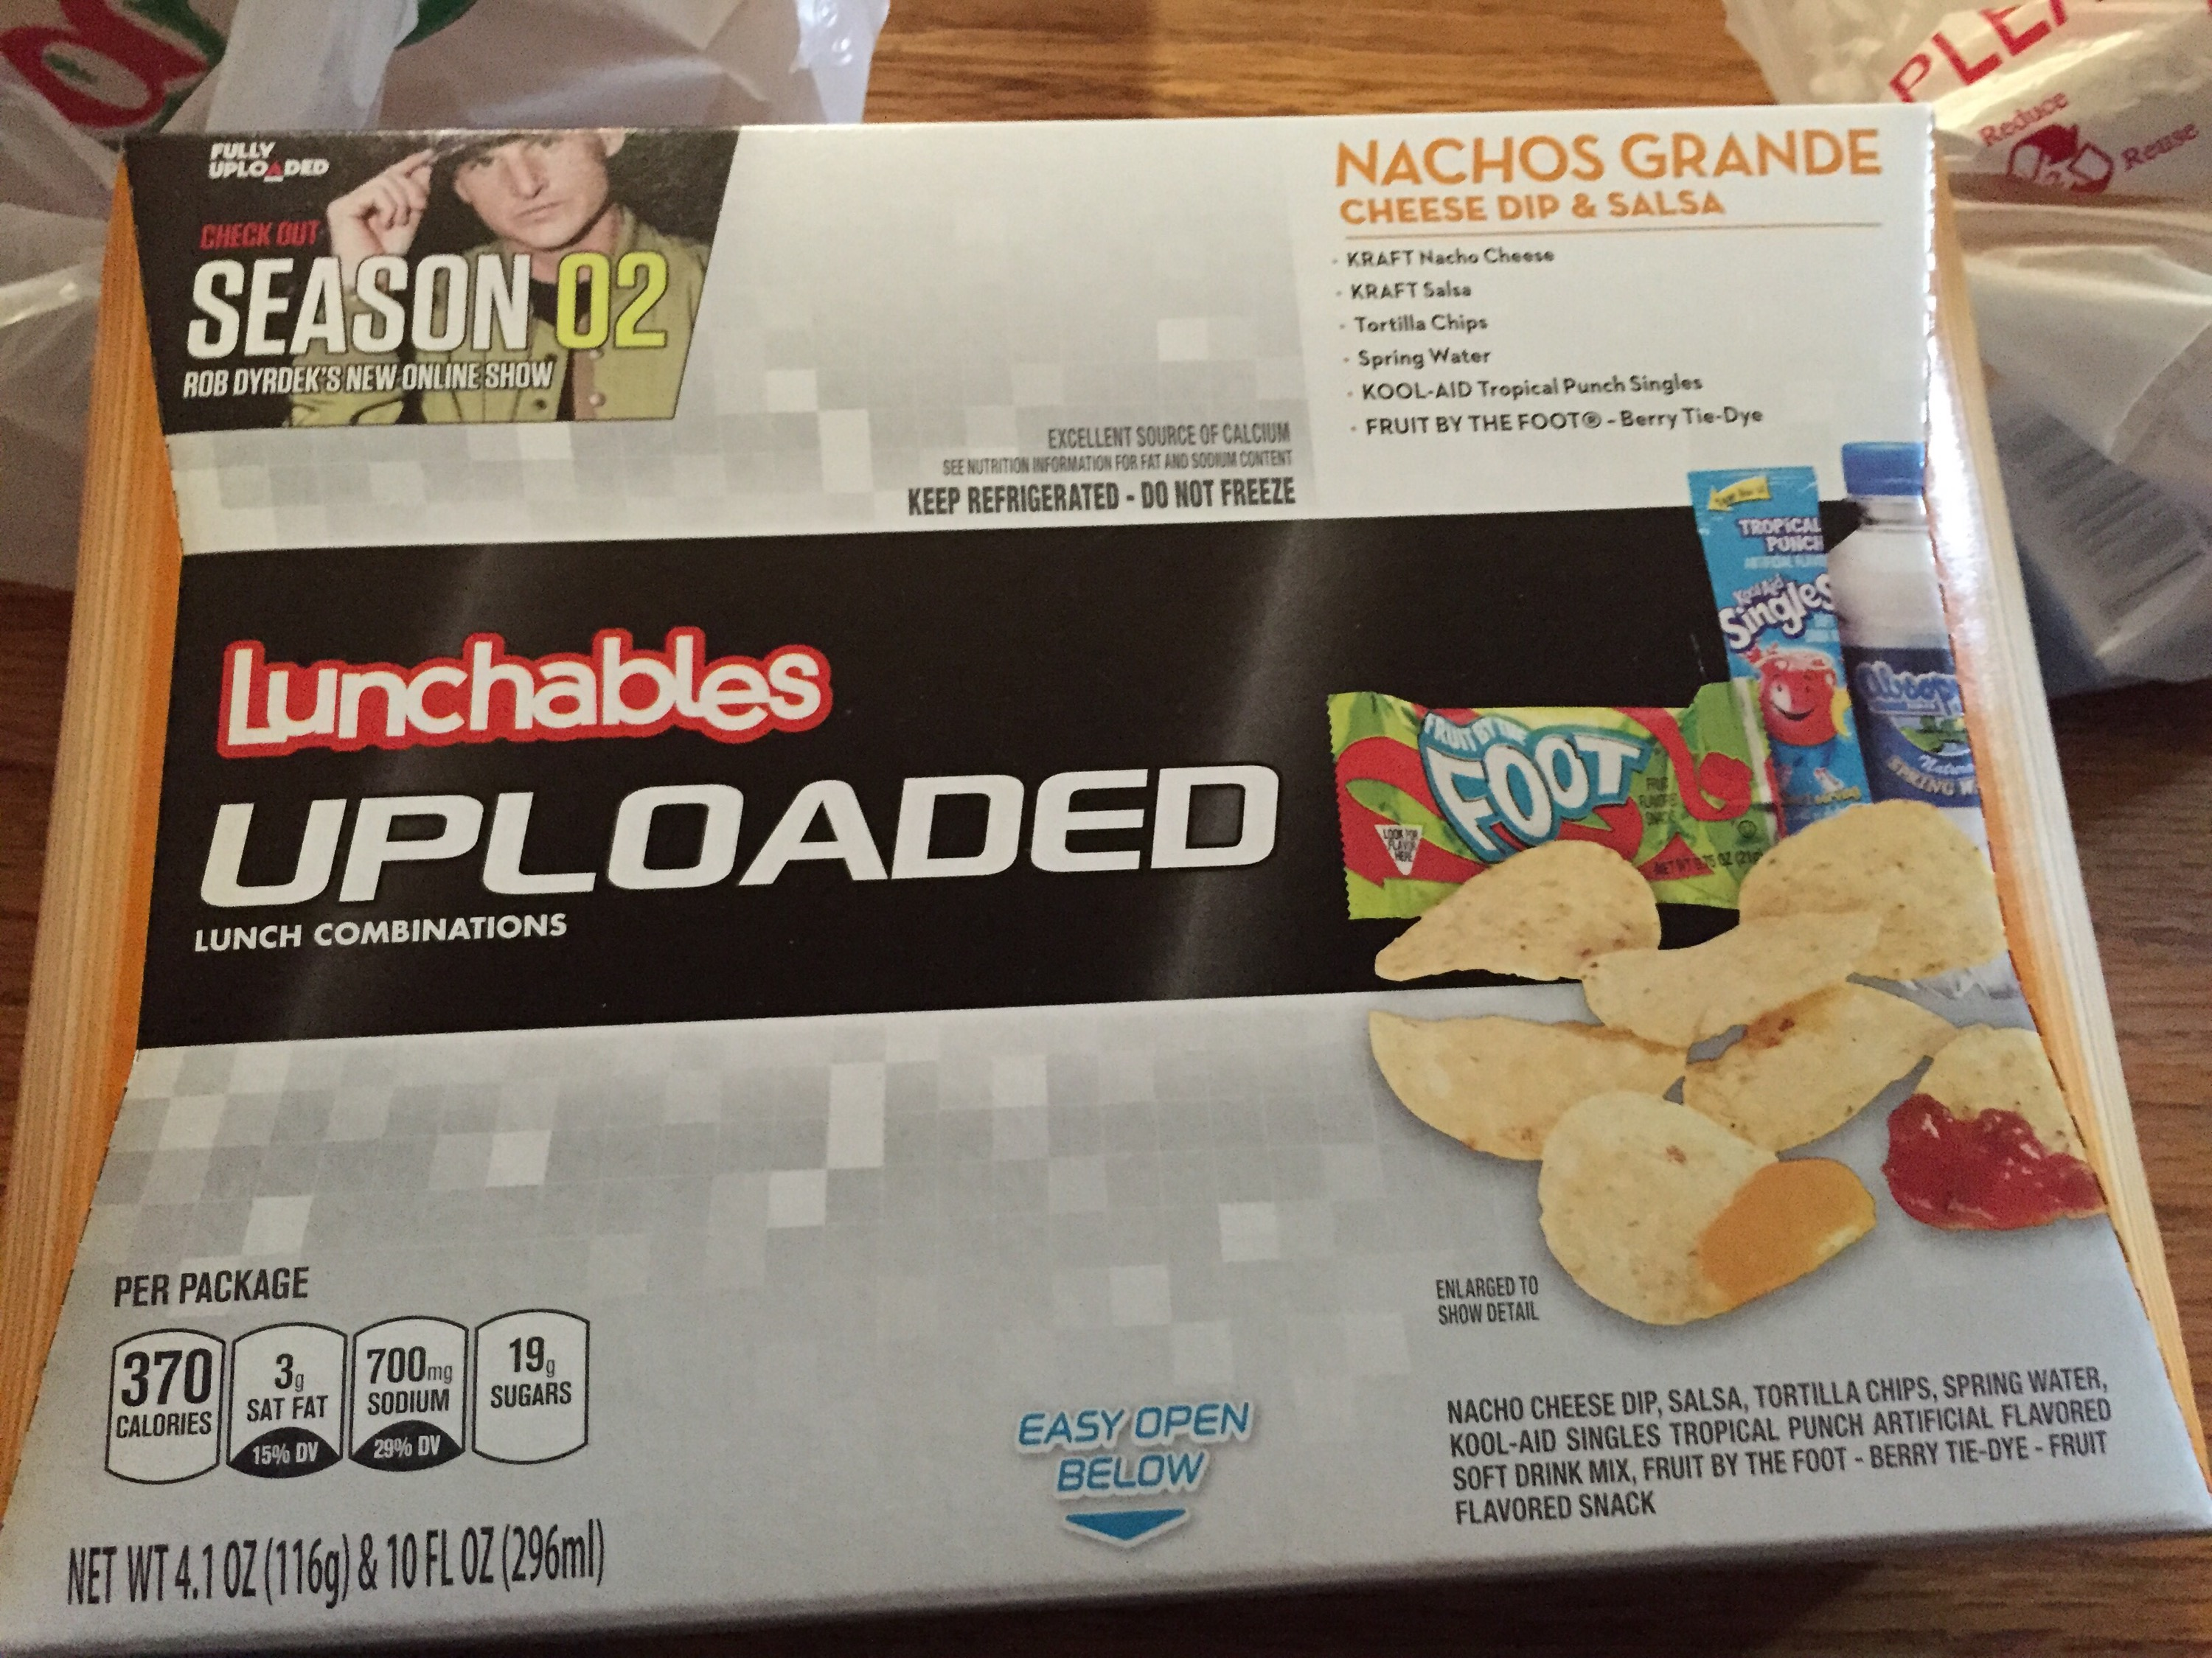 Lunchables Uploaded on oscar mayer lunchables coupons 2014